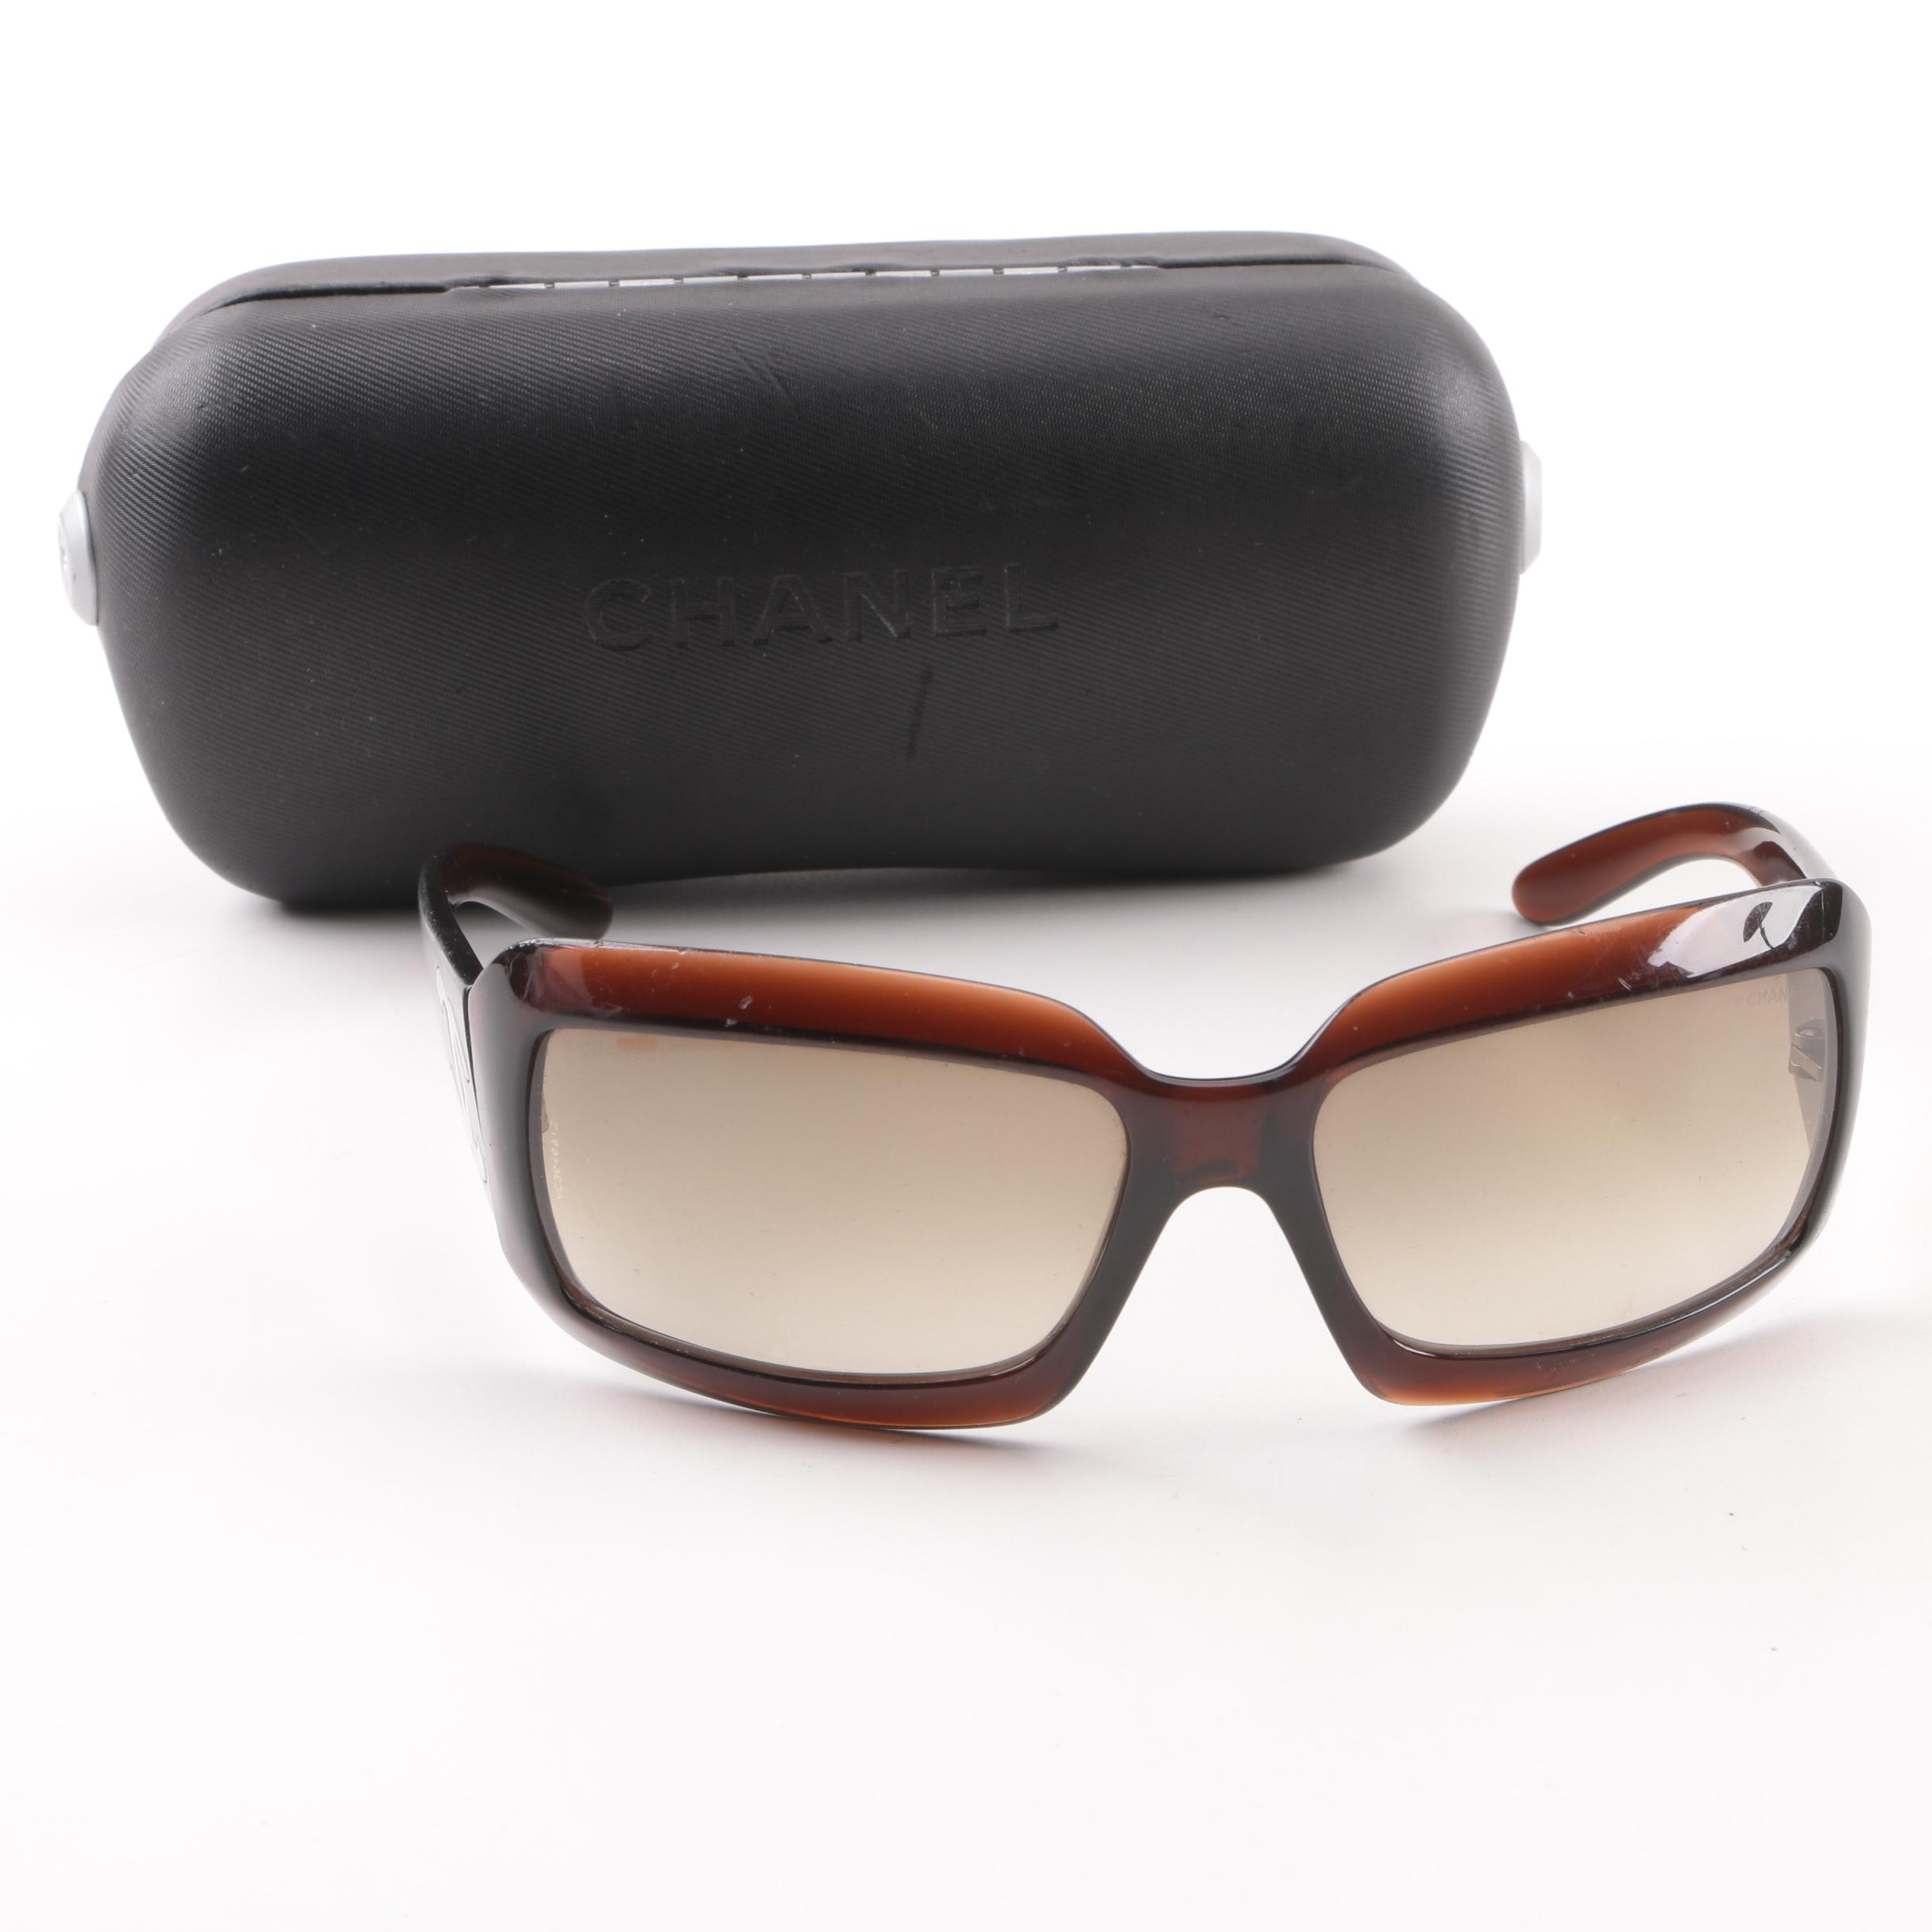 Chanel Brown Sunglasses with Case